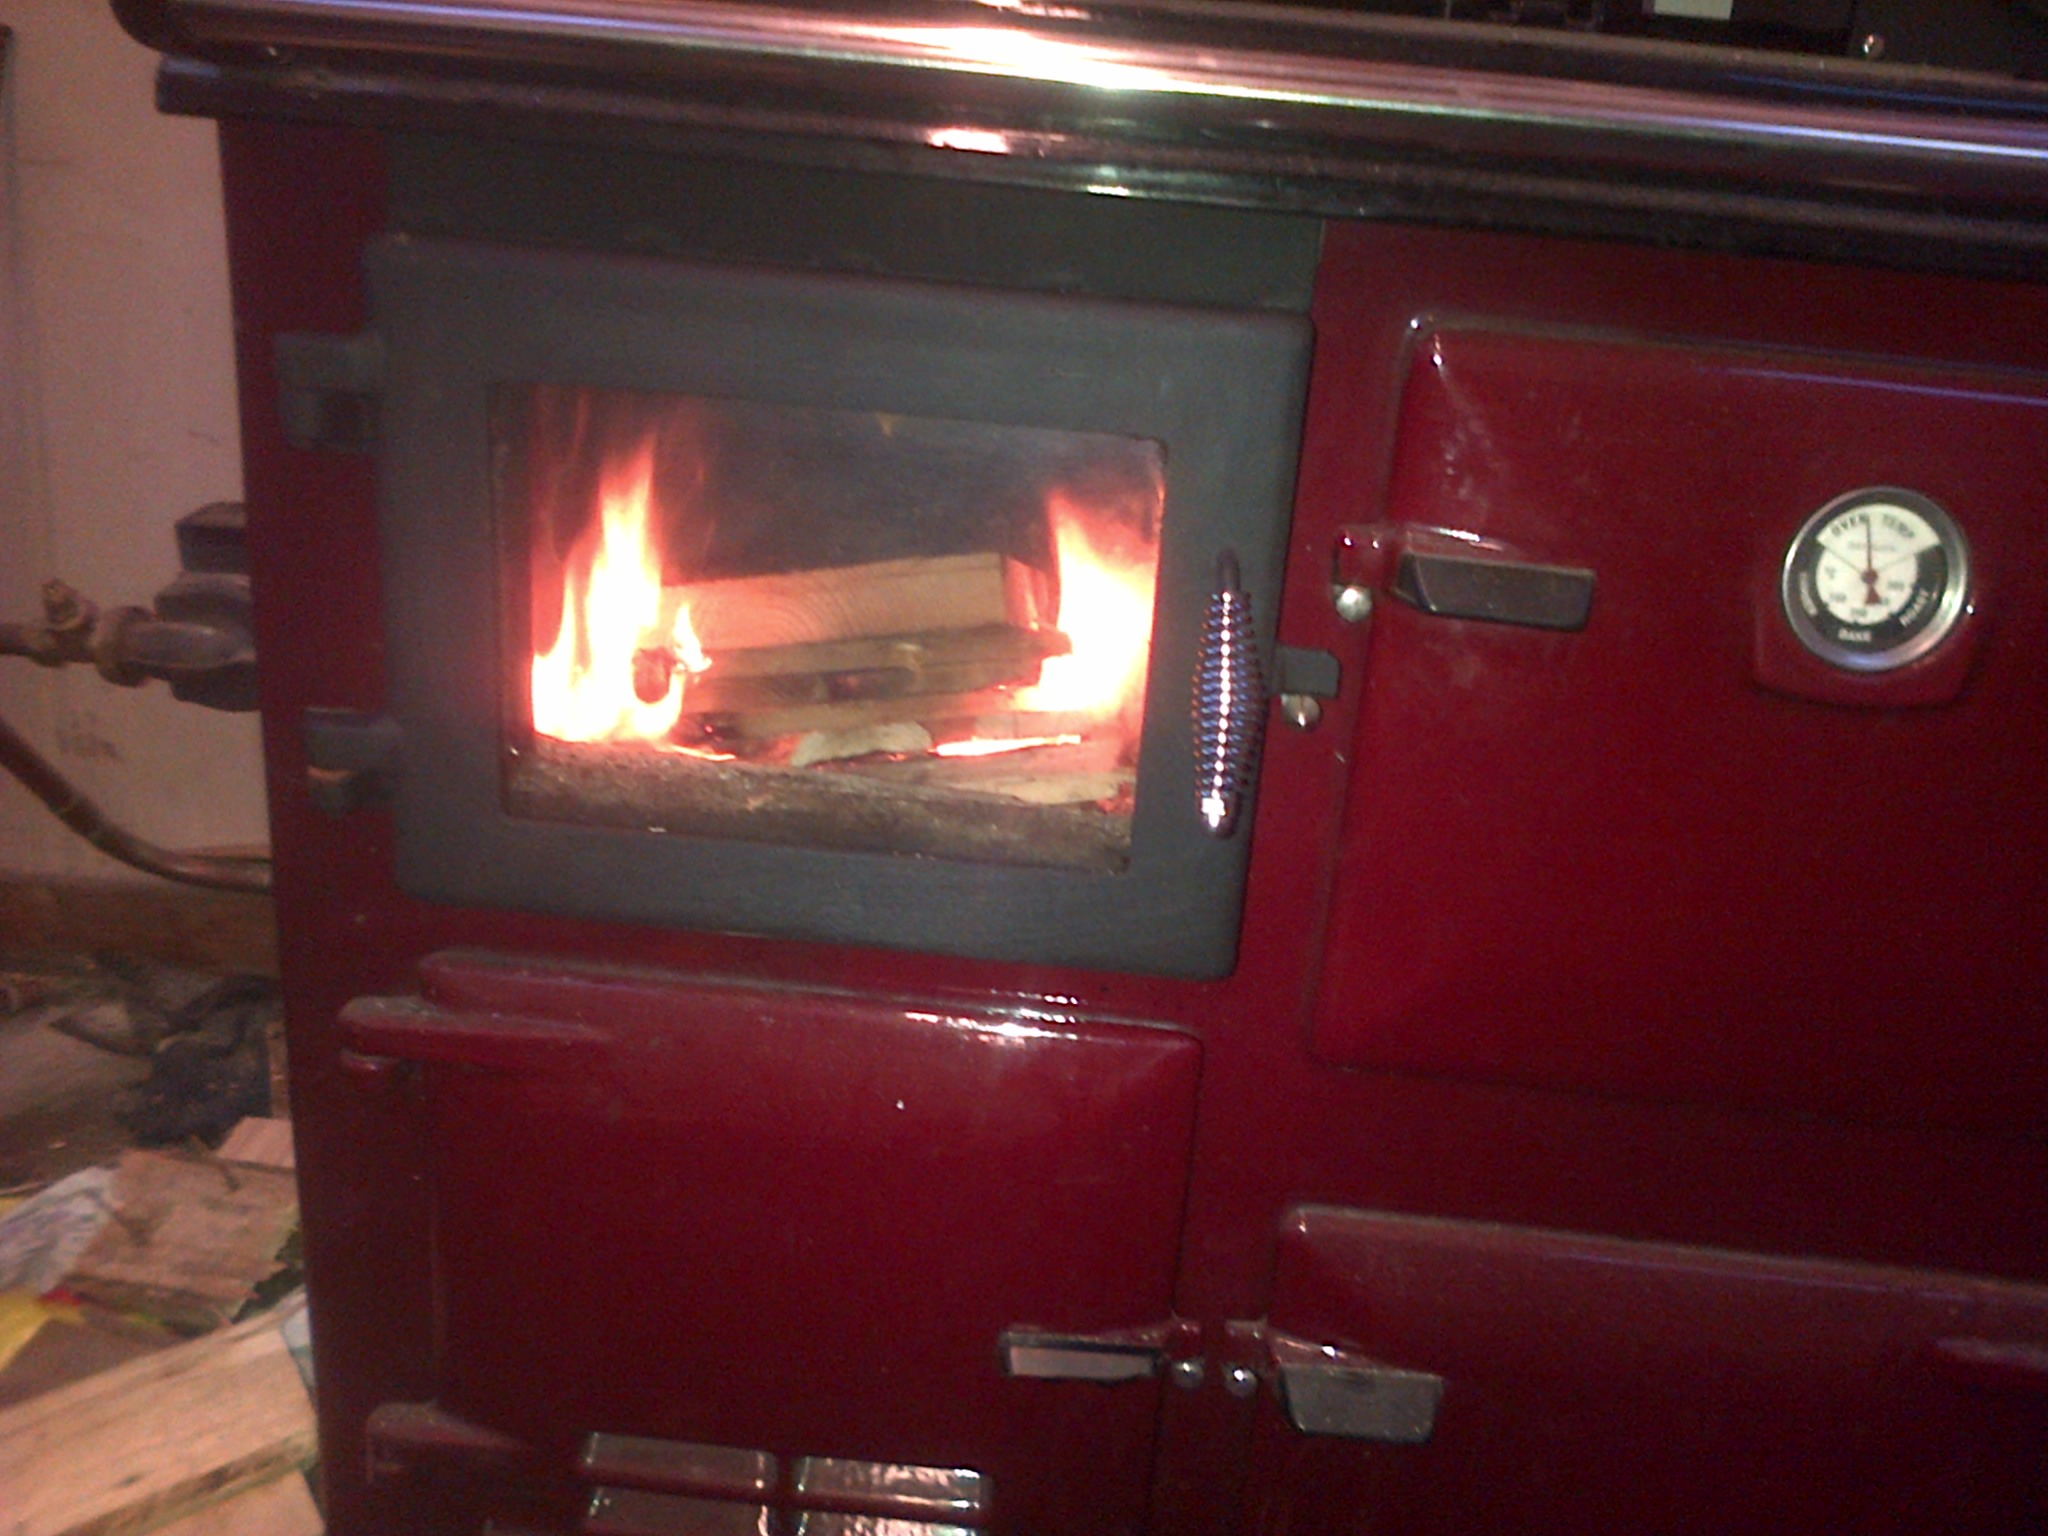 The Flameview Cooker With Glass Fire Viewing Door